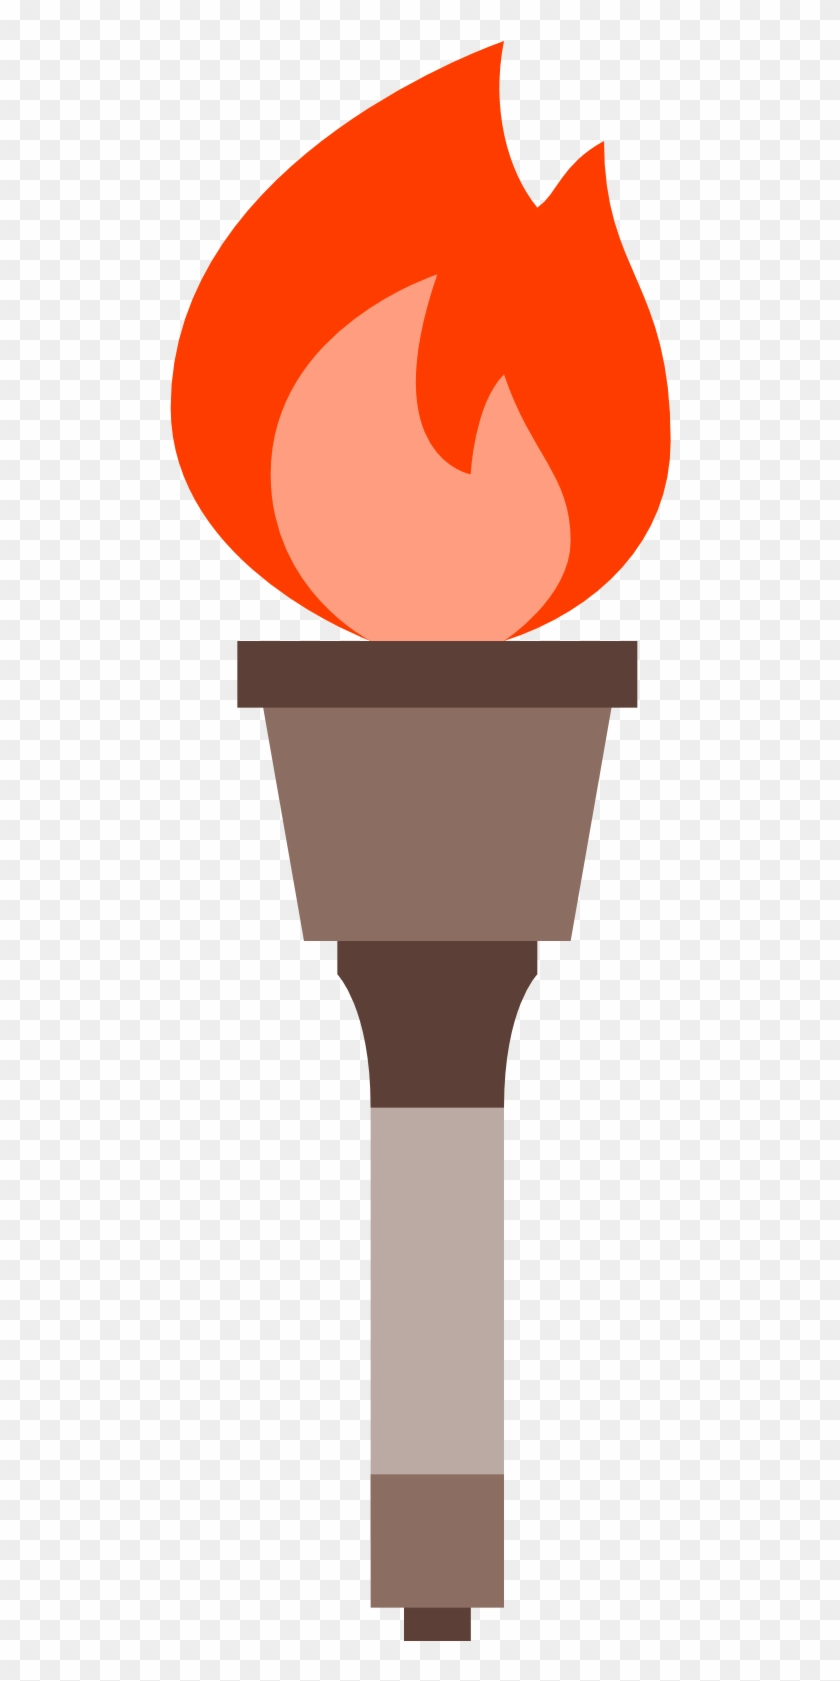 Torch Clipart Icon - Olympic Torch Png #117877